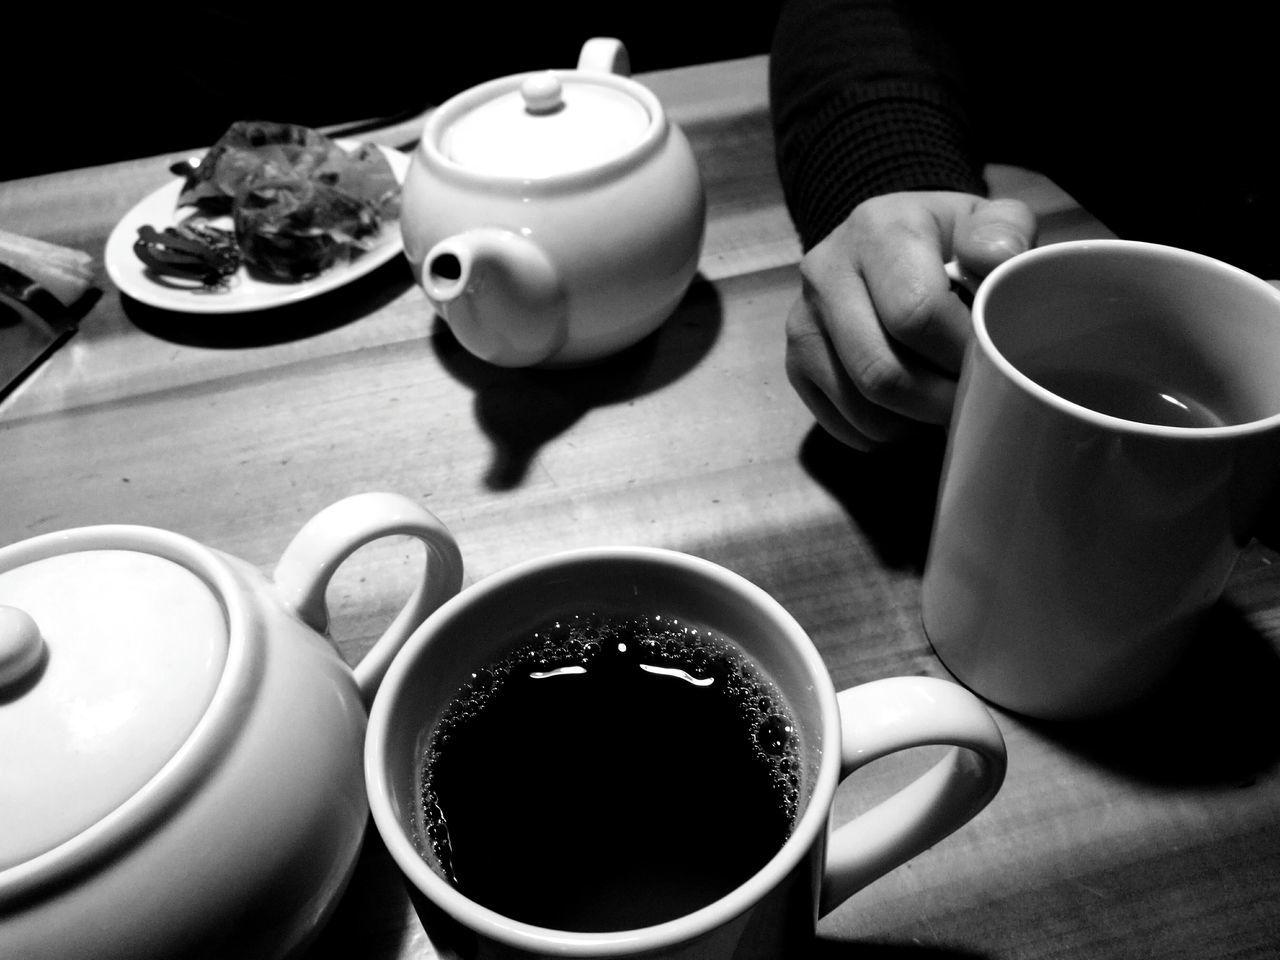 Tea - Hot Drink Tea Cup Teapot Indoors  Food And Drink Tea Tea Time First Eyeem Photo Blackandwhite Black And White Black & White Blackandwhite Photography Black&white EyeEmNewHere